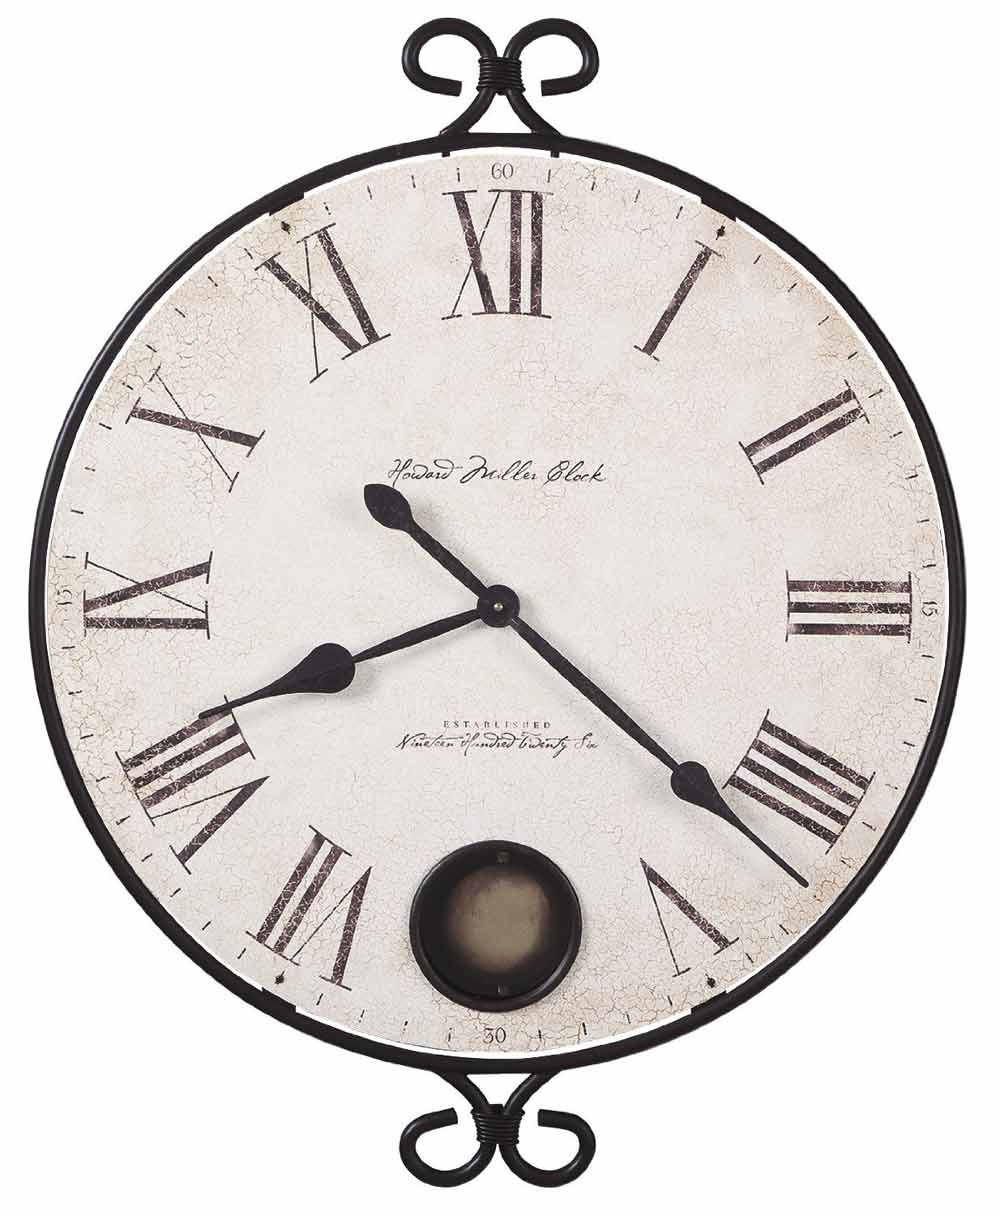 Howard miller gallery pocket watch 625 572 large wall clock free howard miller magdalen 625 310 large wall clock amipublicfo Images